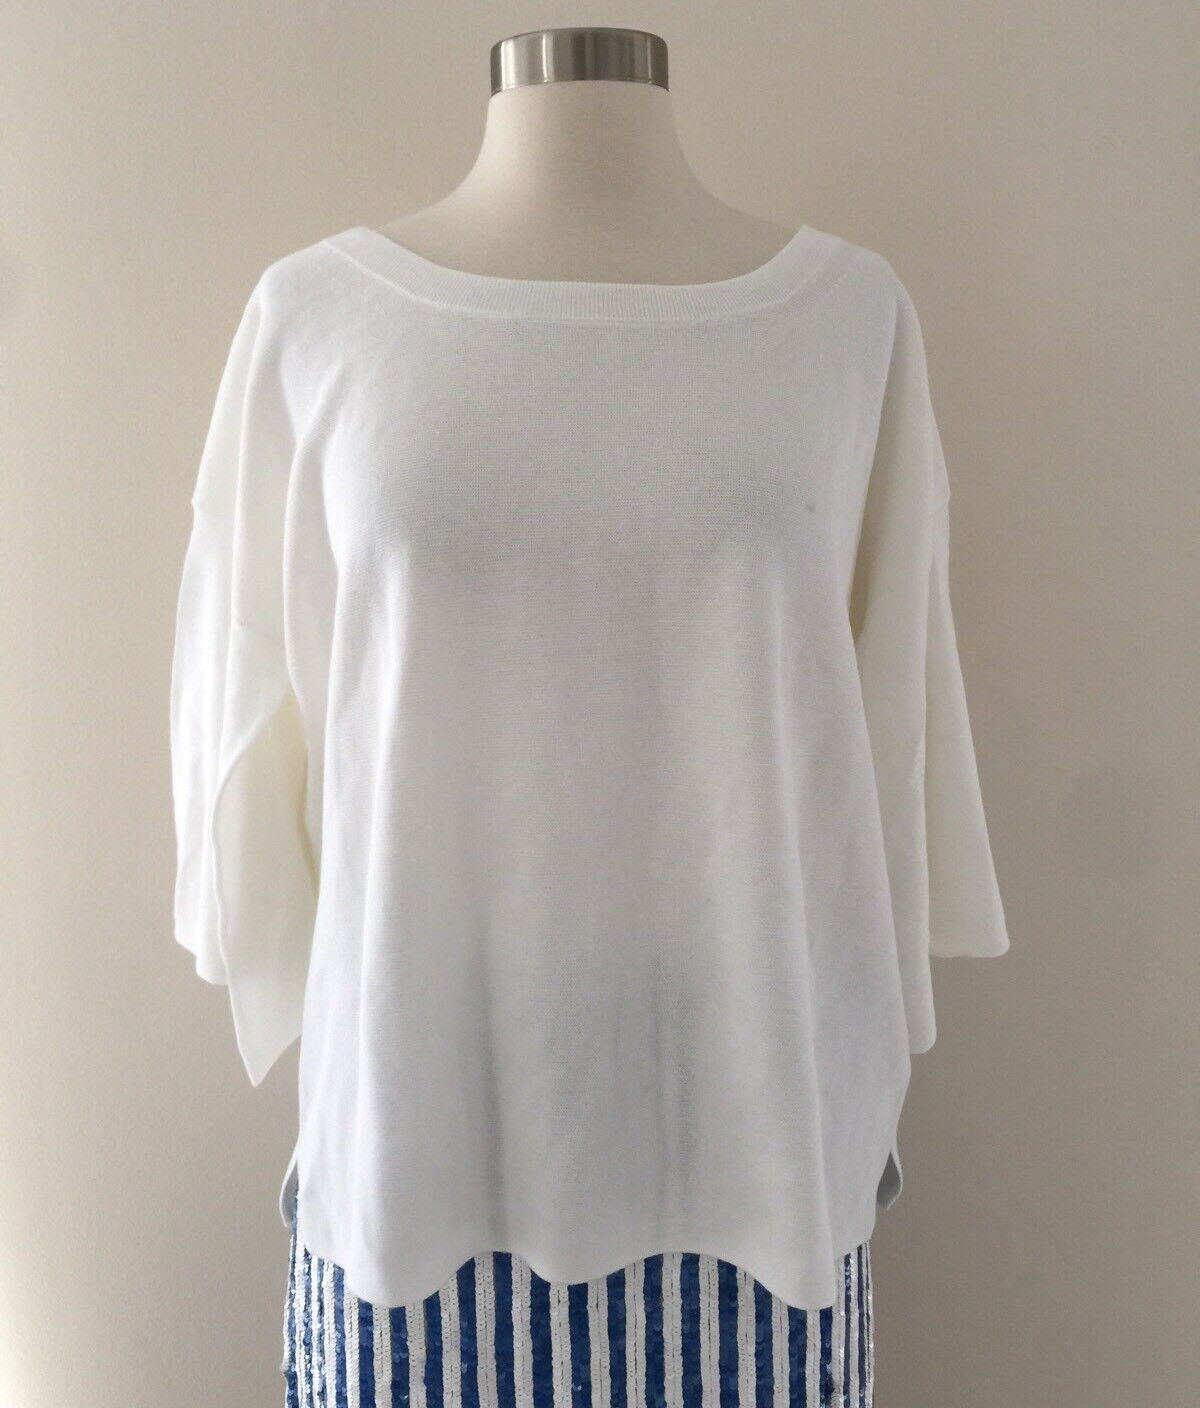 JCrew Dramatic-sleeve sweater in summerweight cotton White G3606 Size L XL NEW